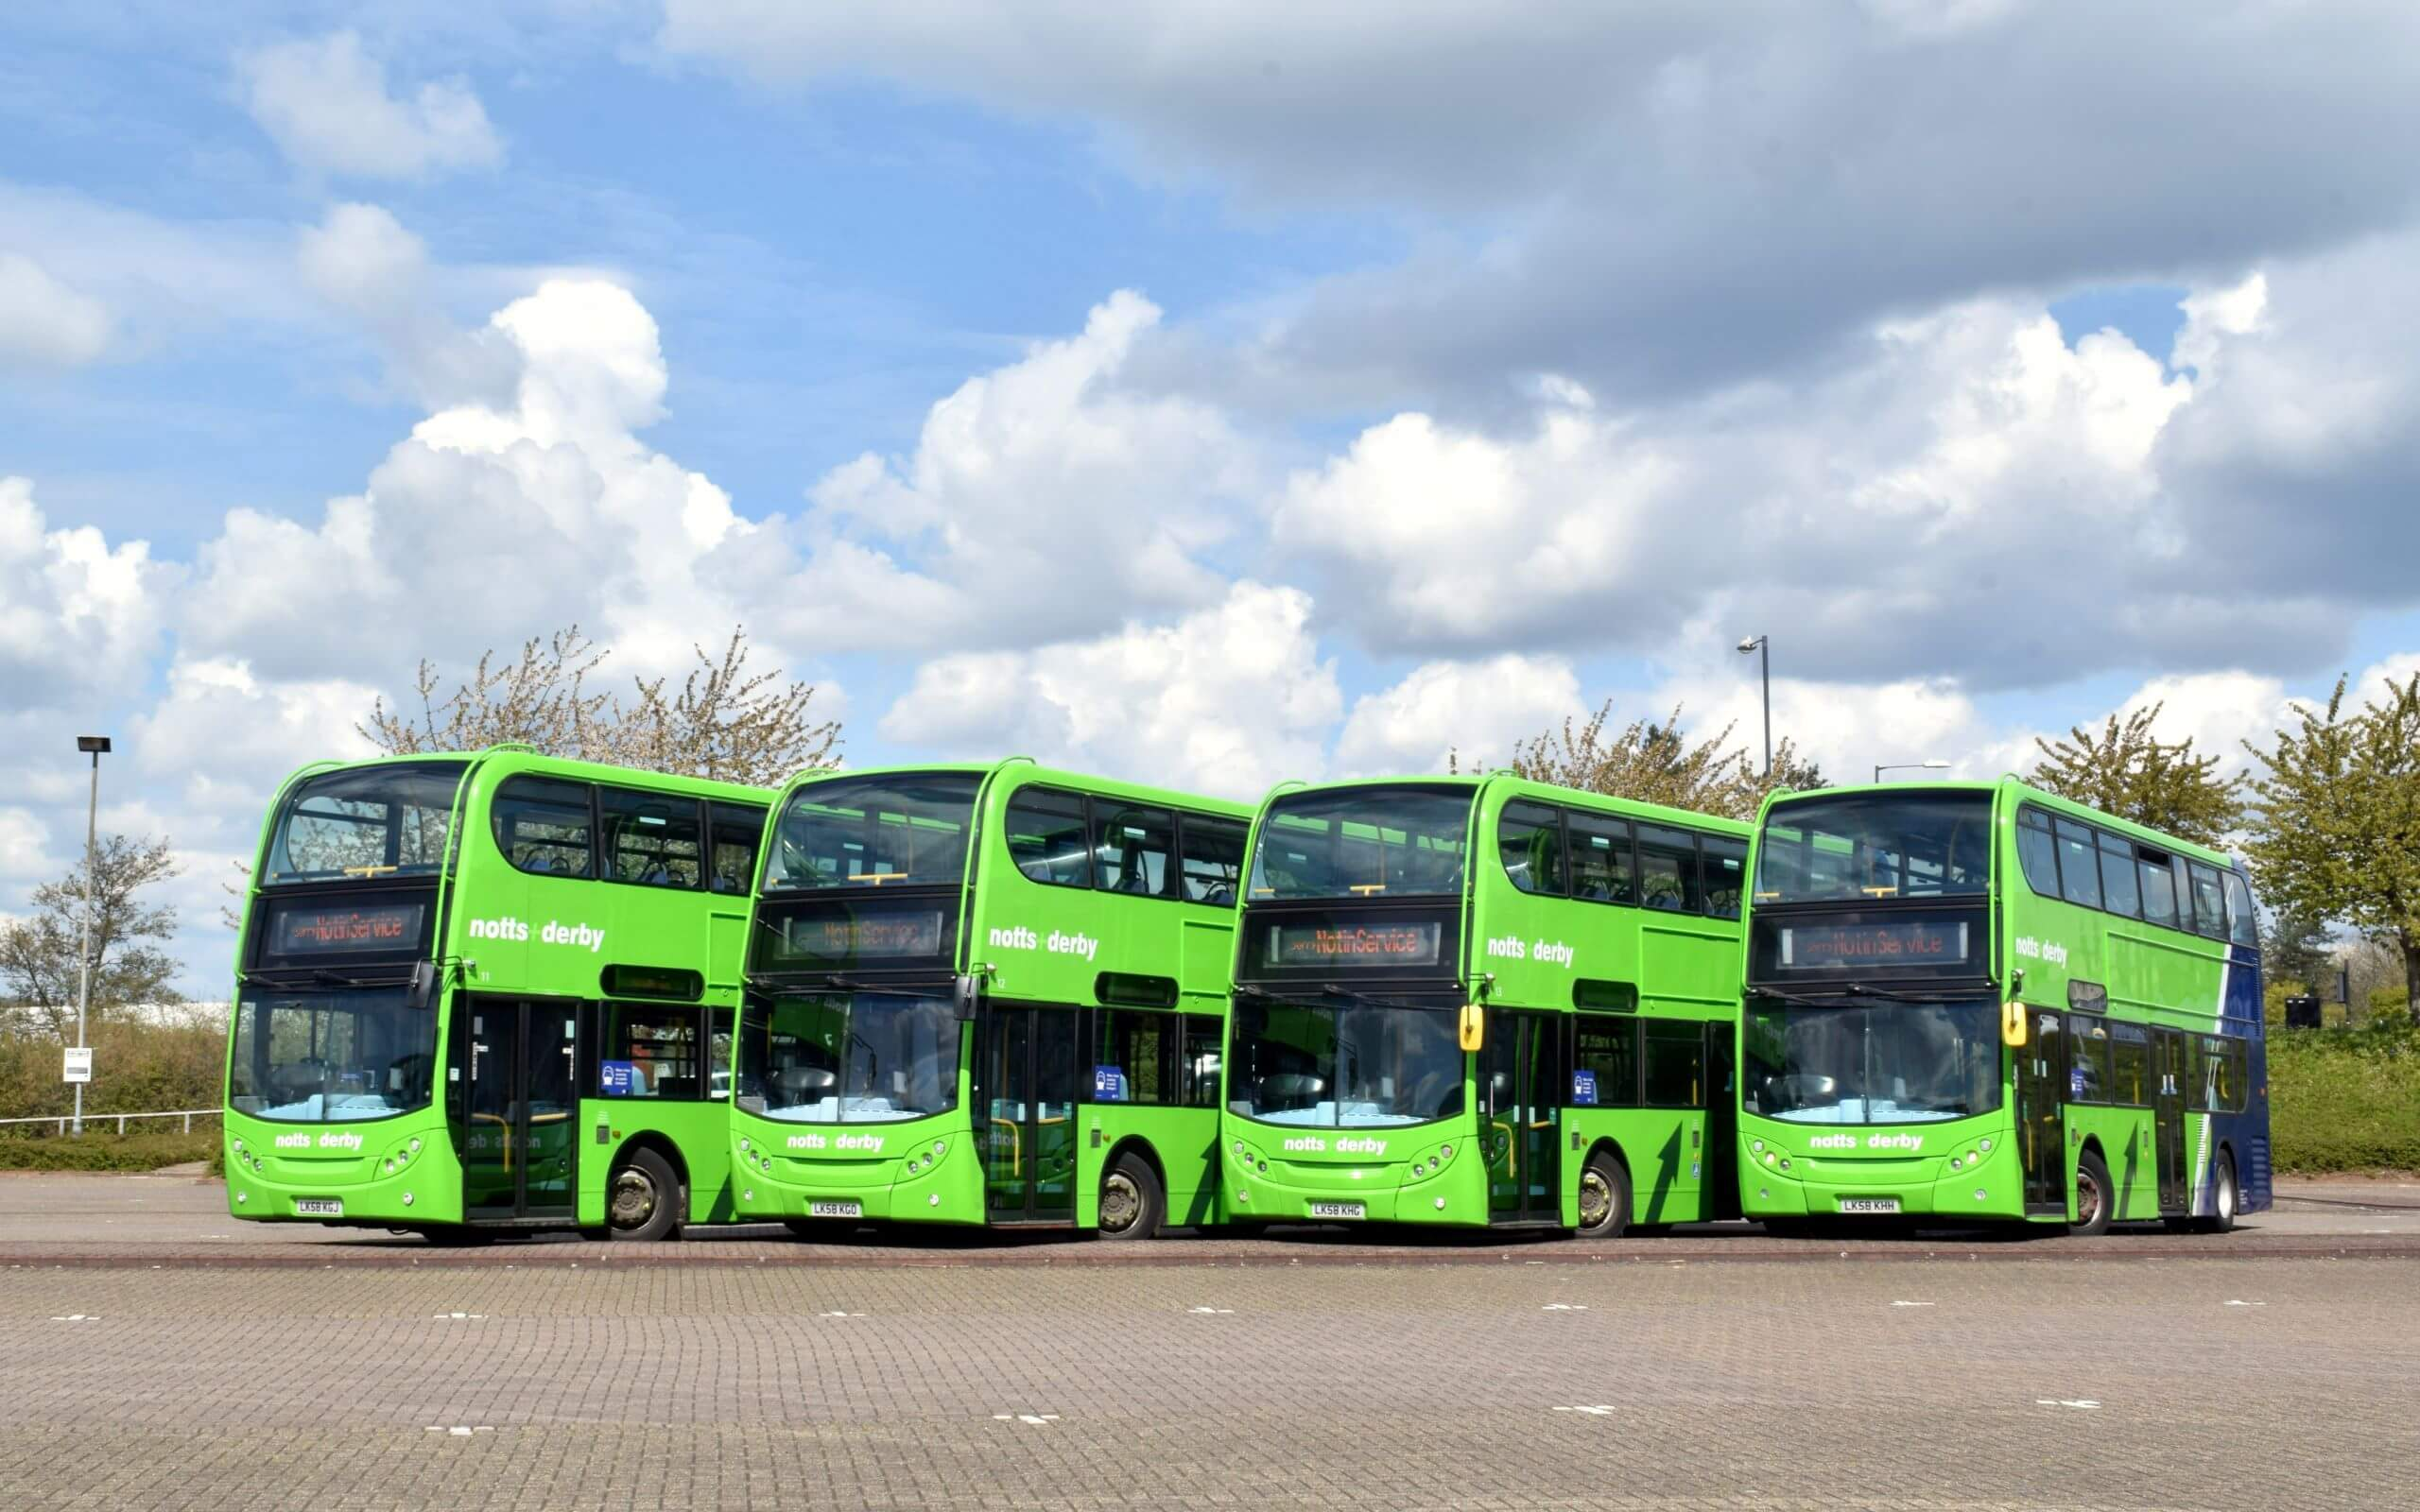 Four green double-decker buses